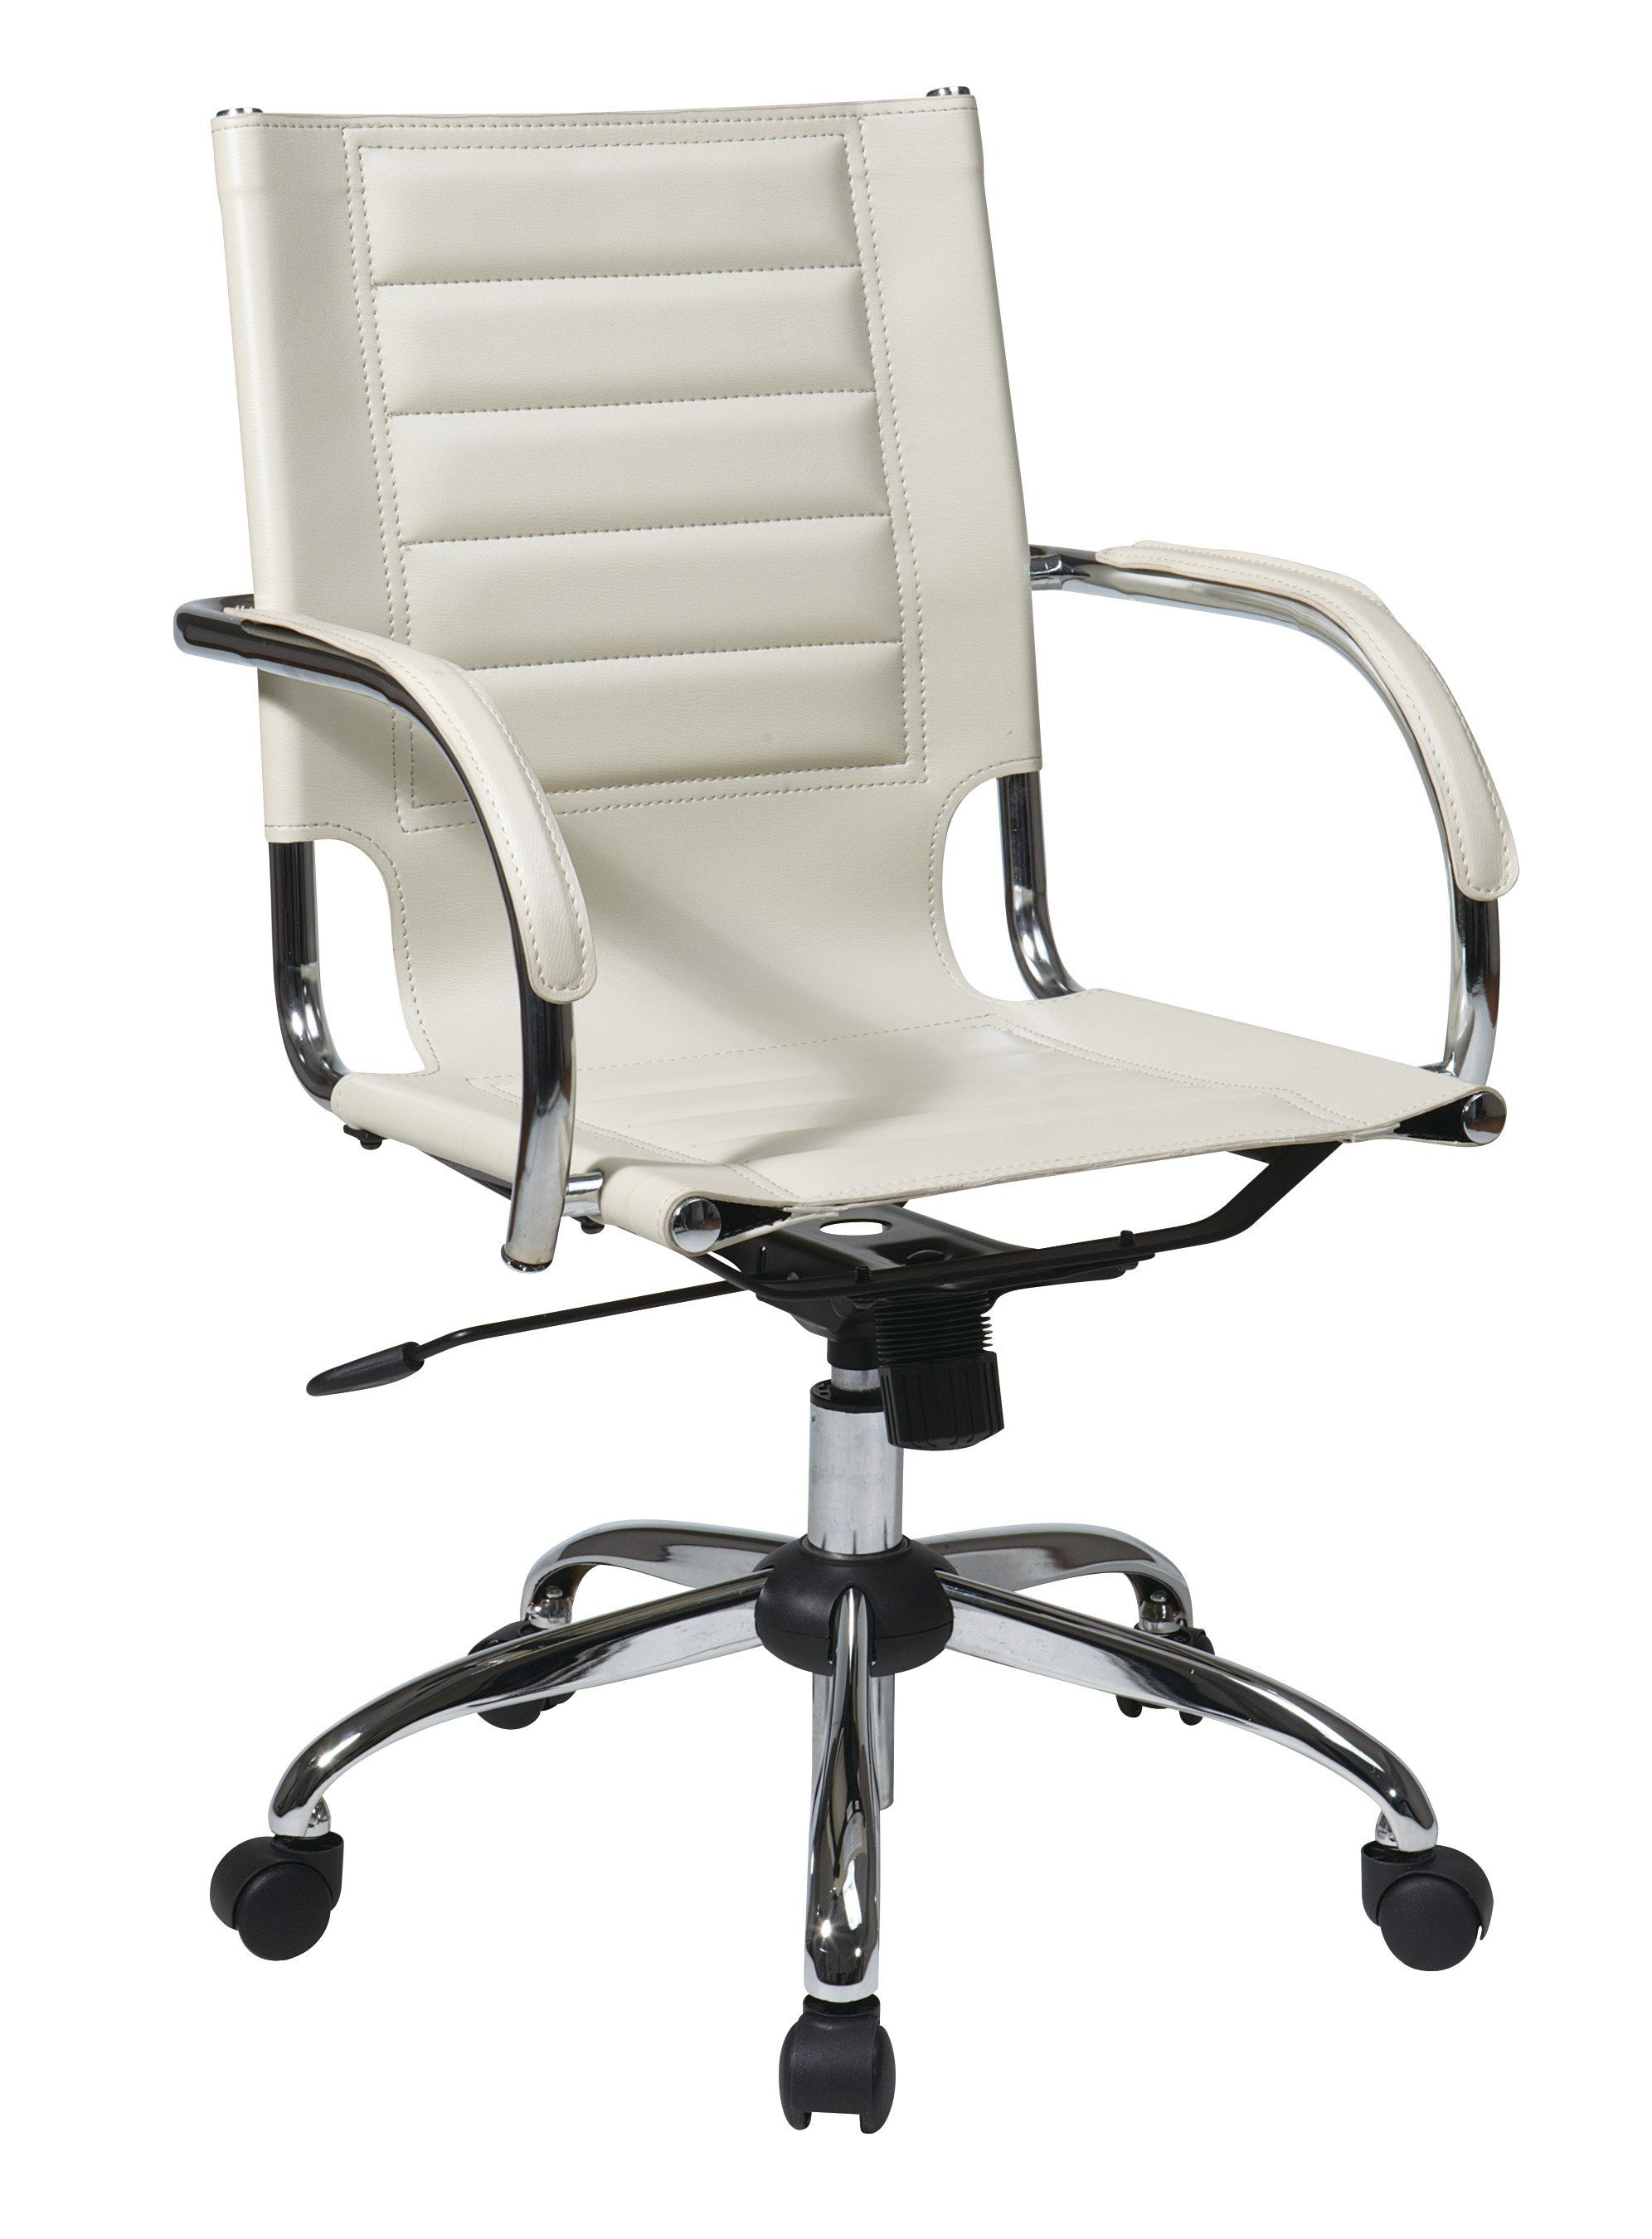 office star cream trinidad office chair products pinterest